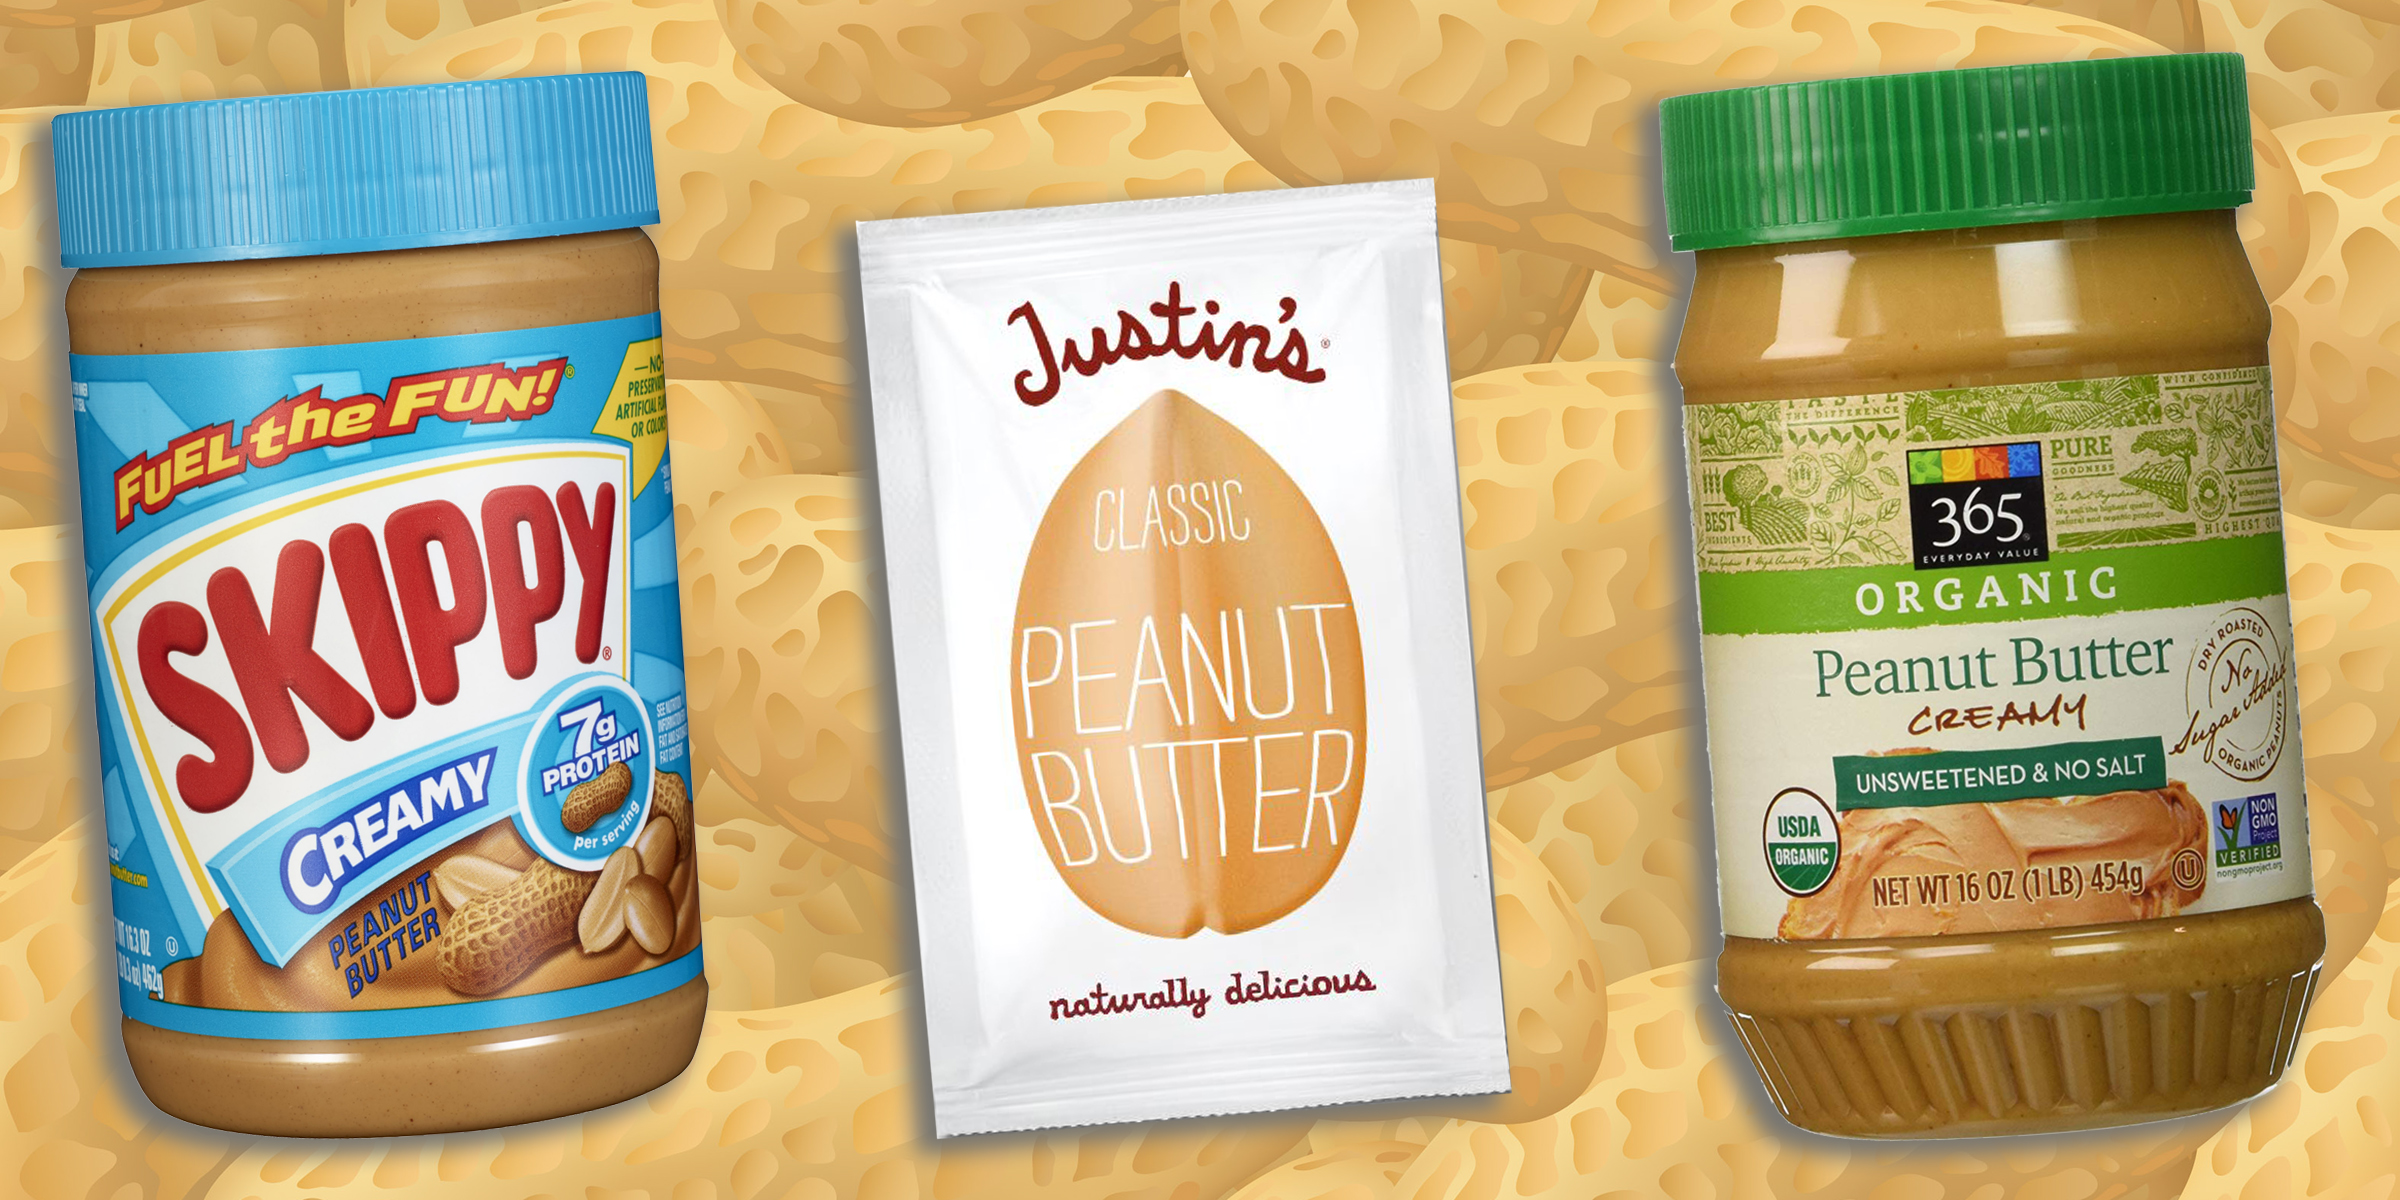 edd7b308ed8 Best peanut butters according to nutritionists and chefs